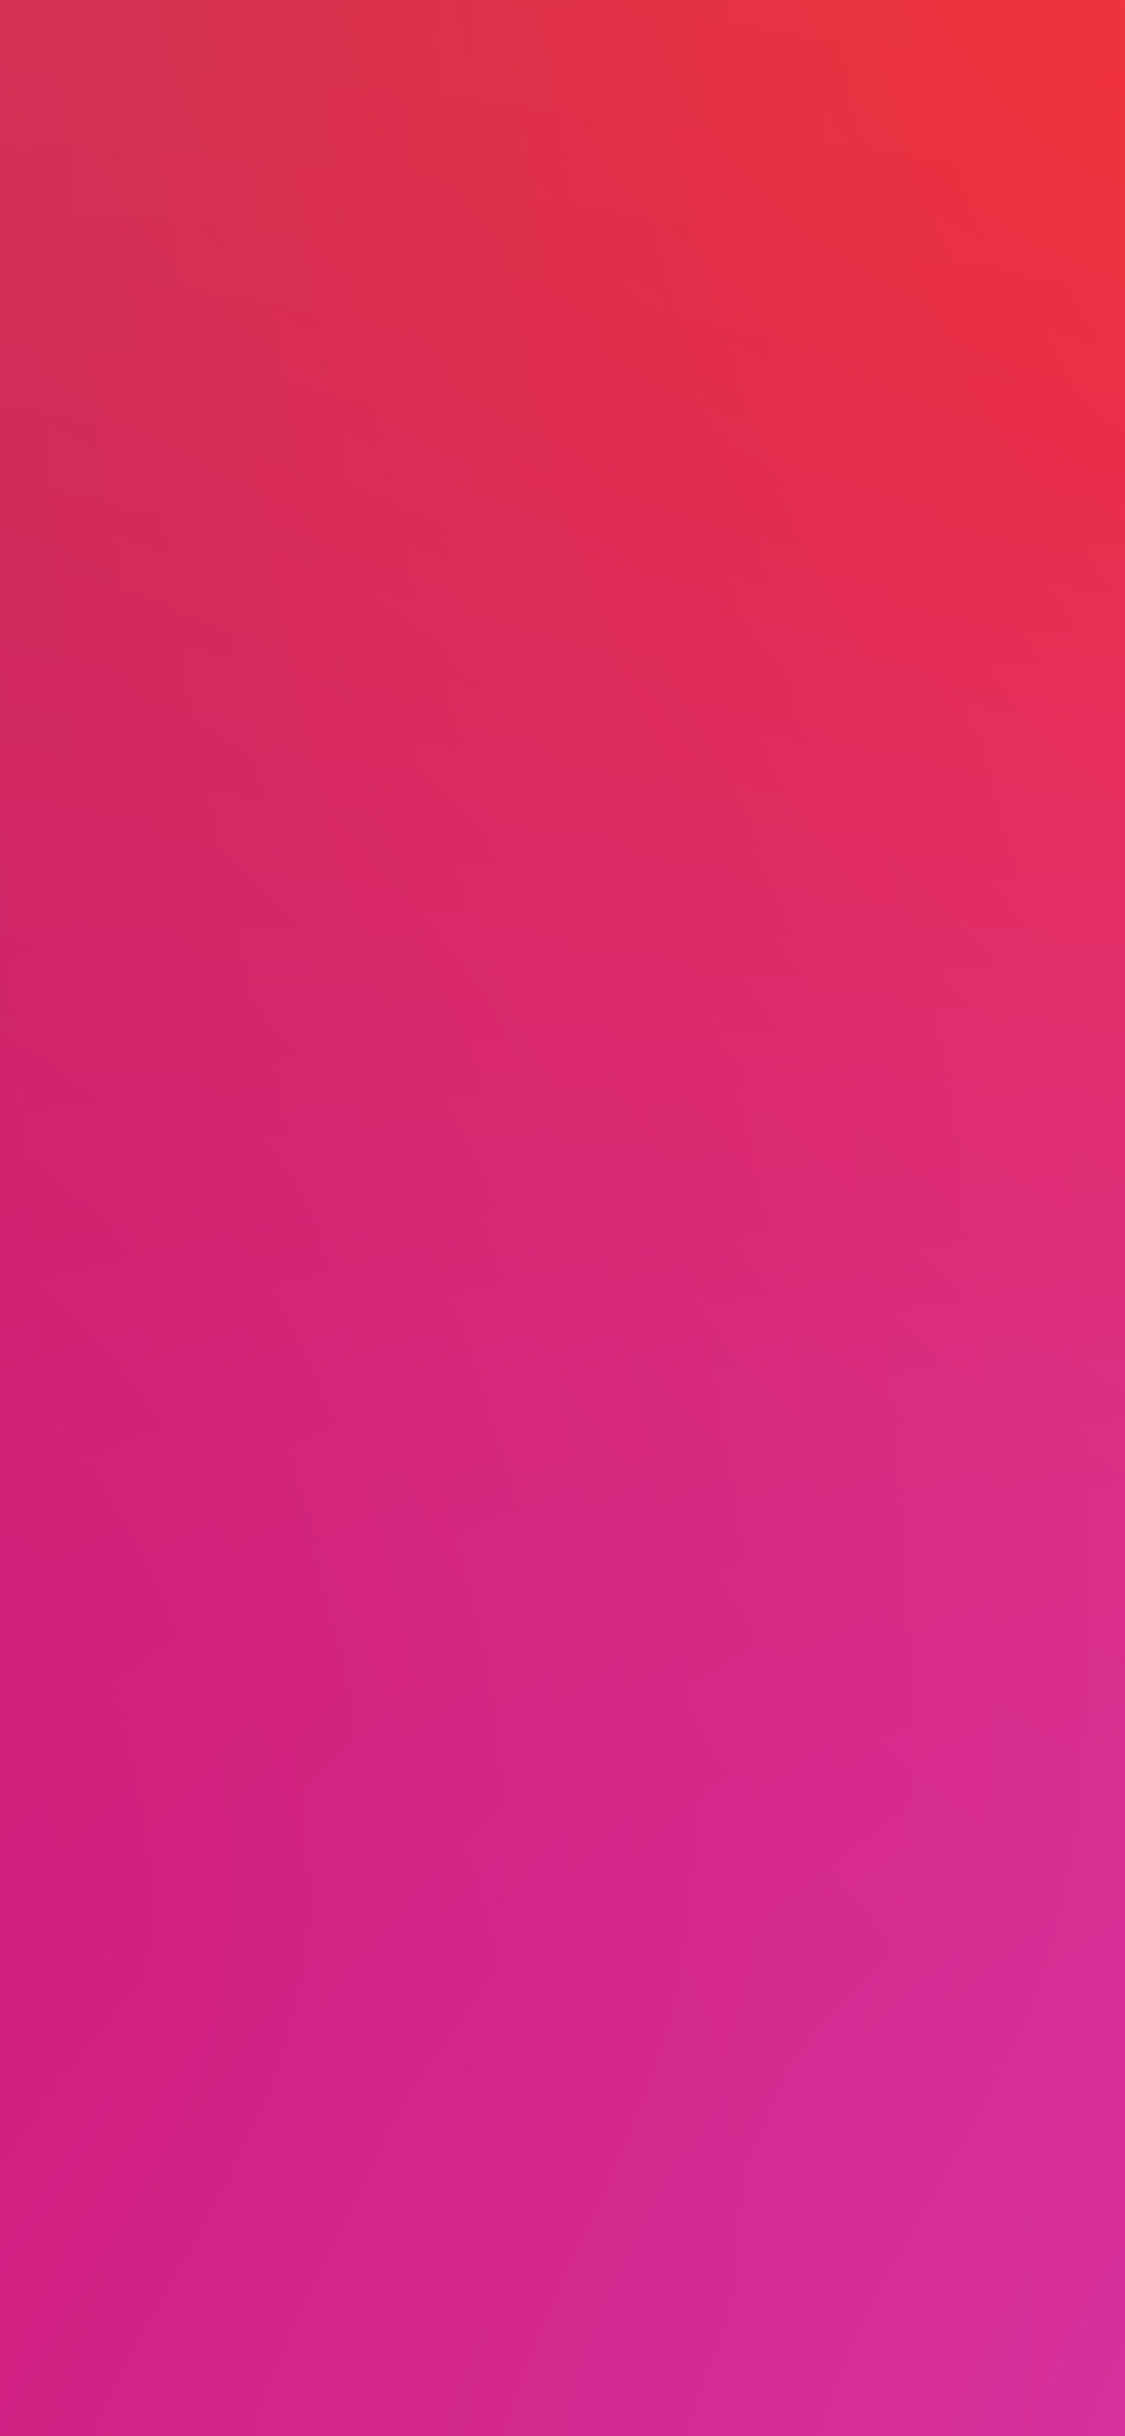 iPhonexpapers.com-Apple-iPhone-wallpaper-sm90-hot-pink-red-blur-gradation